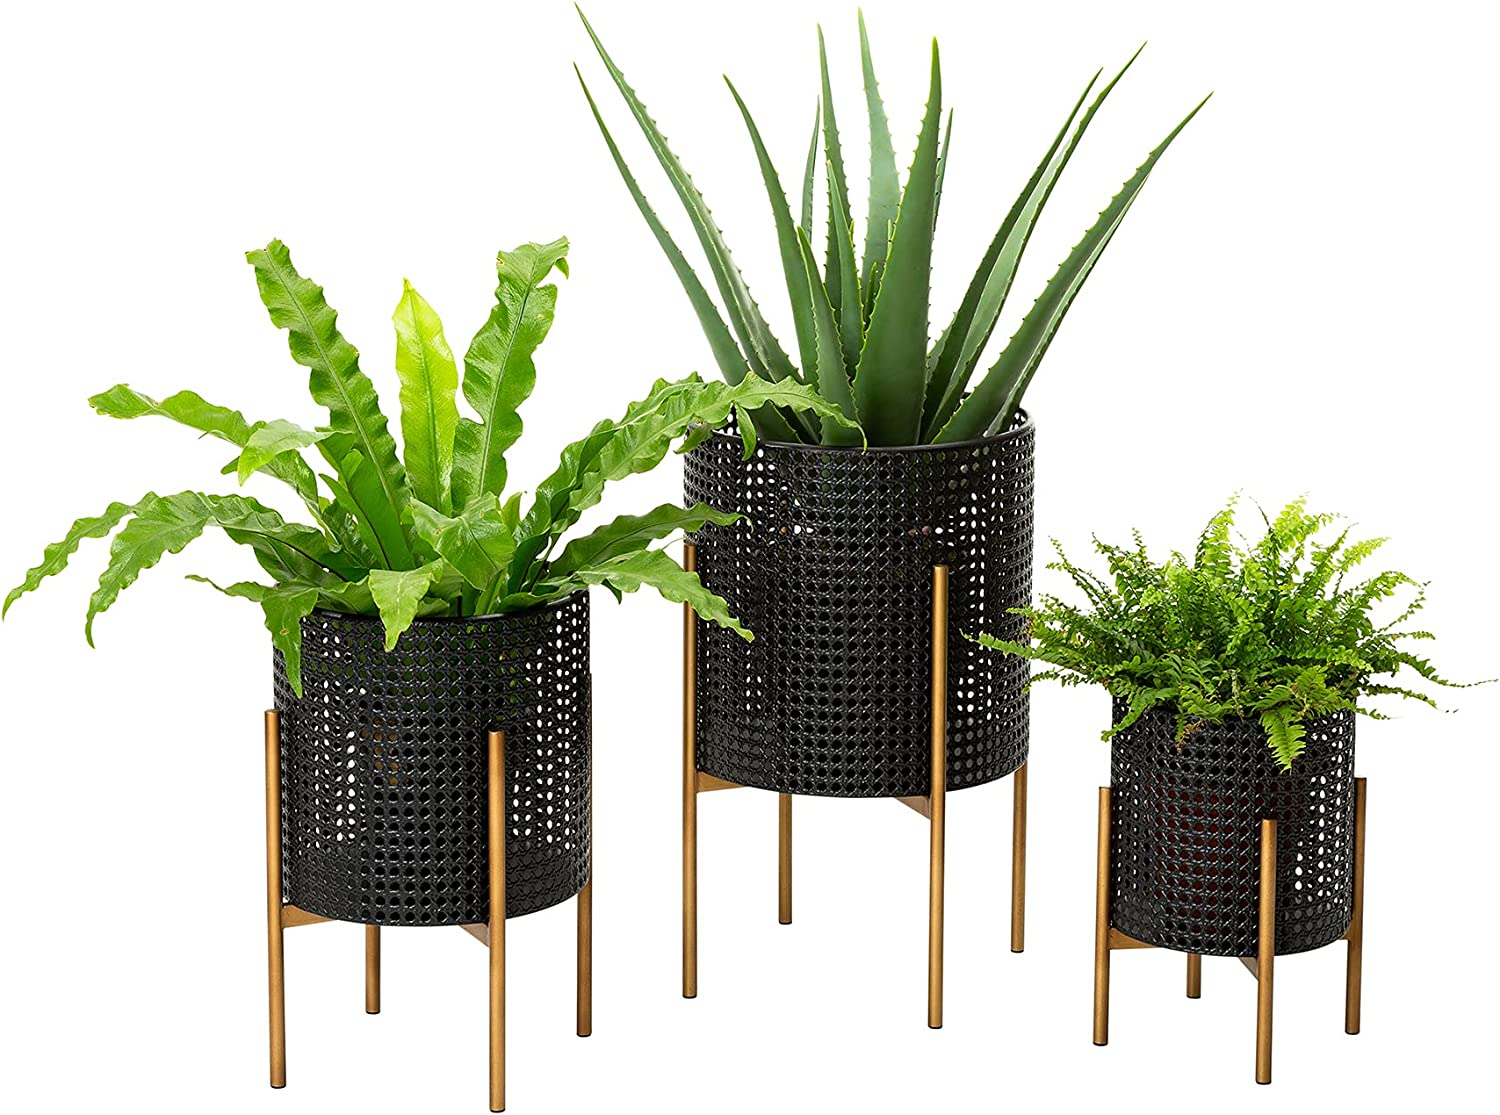 Glitzhome 3 Set Modern Metal Max 54% OFF with Year-end annual account Planter Floor Stand Flowe